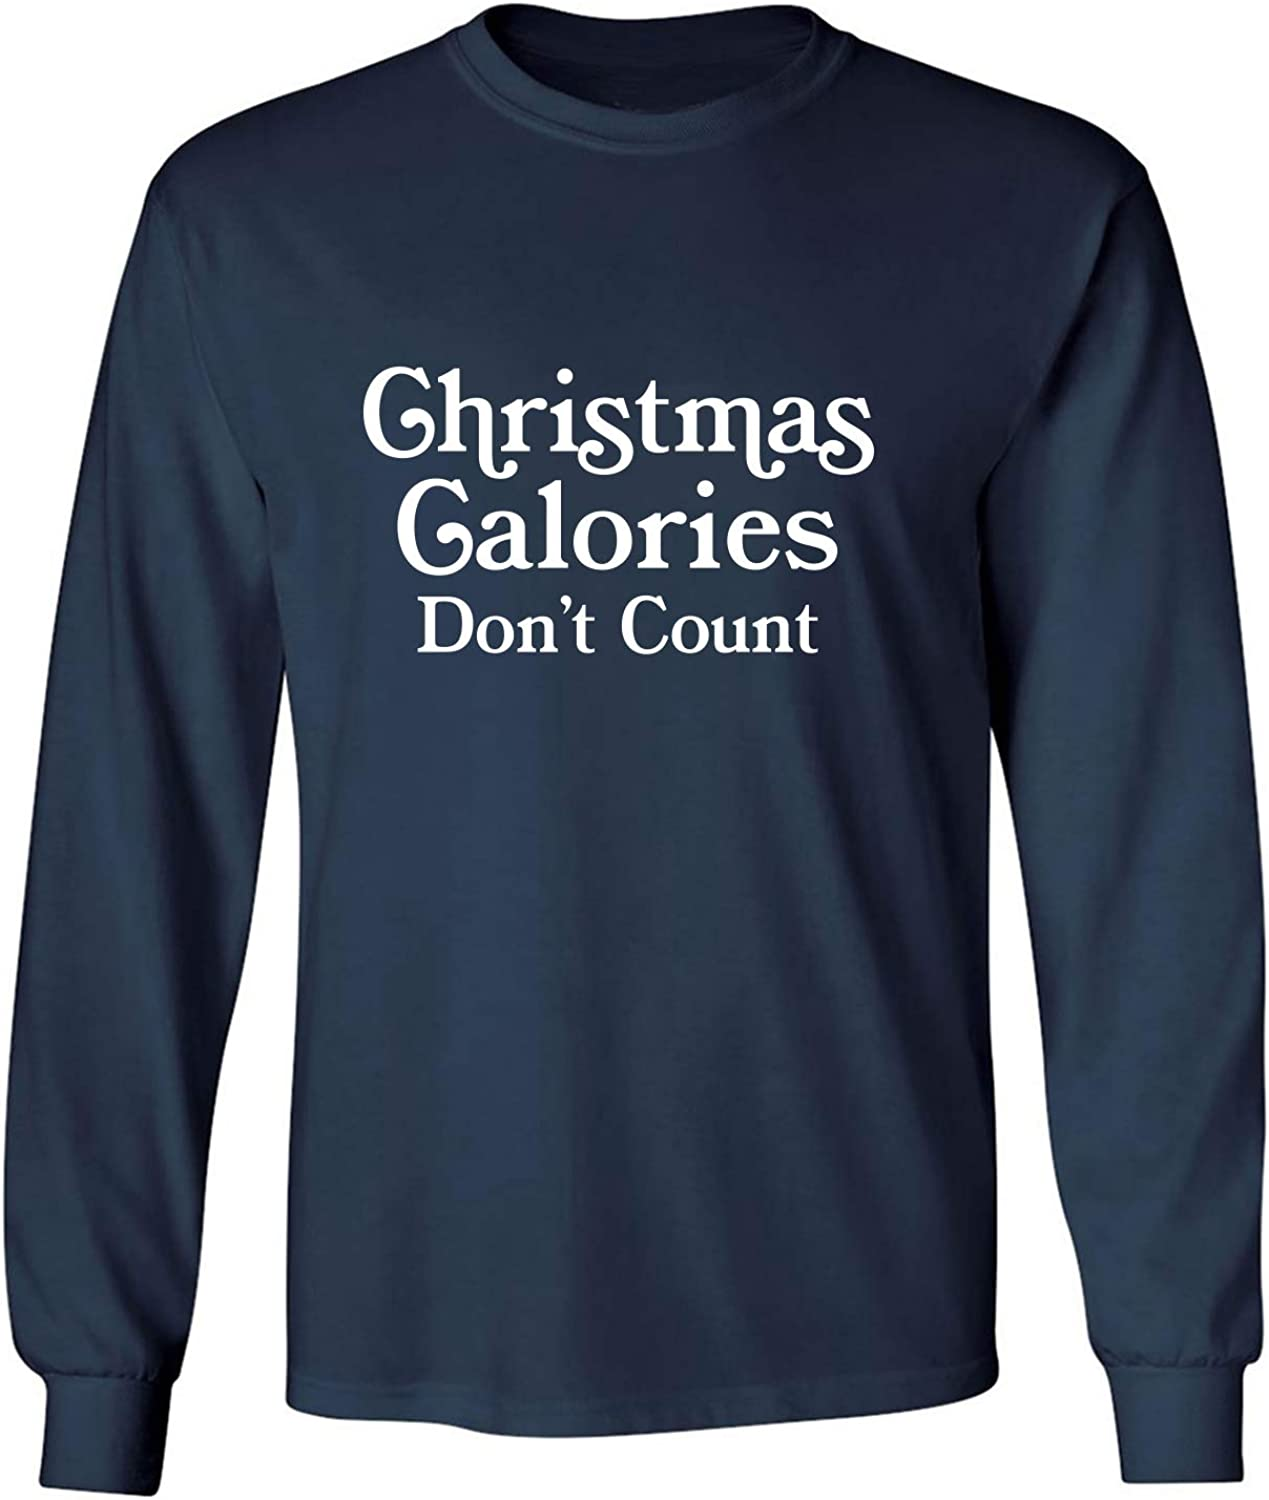 Christmas Calories Don't Count Adult Long Sleeve T-Shirt in Navy - XXXX-Large